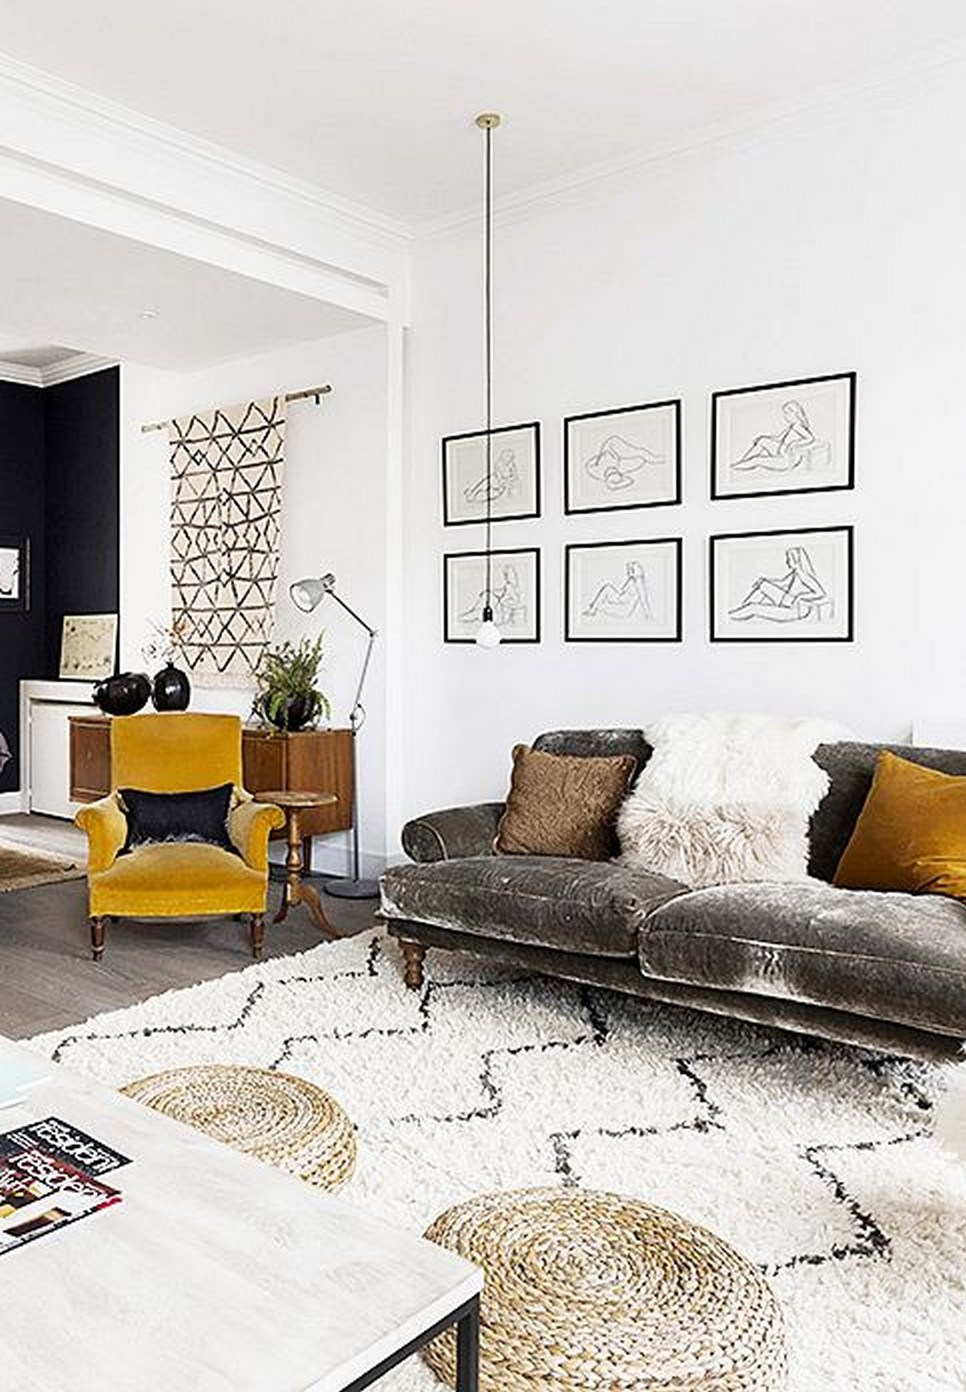 20 Perfect Small Apartment Decorating on a Budget - Decor ... on Apartment Decor Ideas On A Budget  id=57106